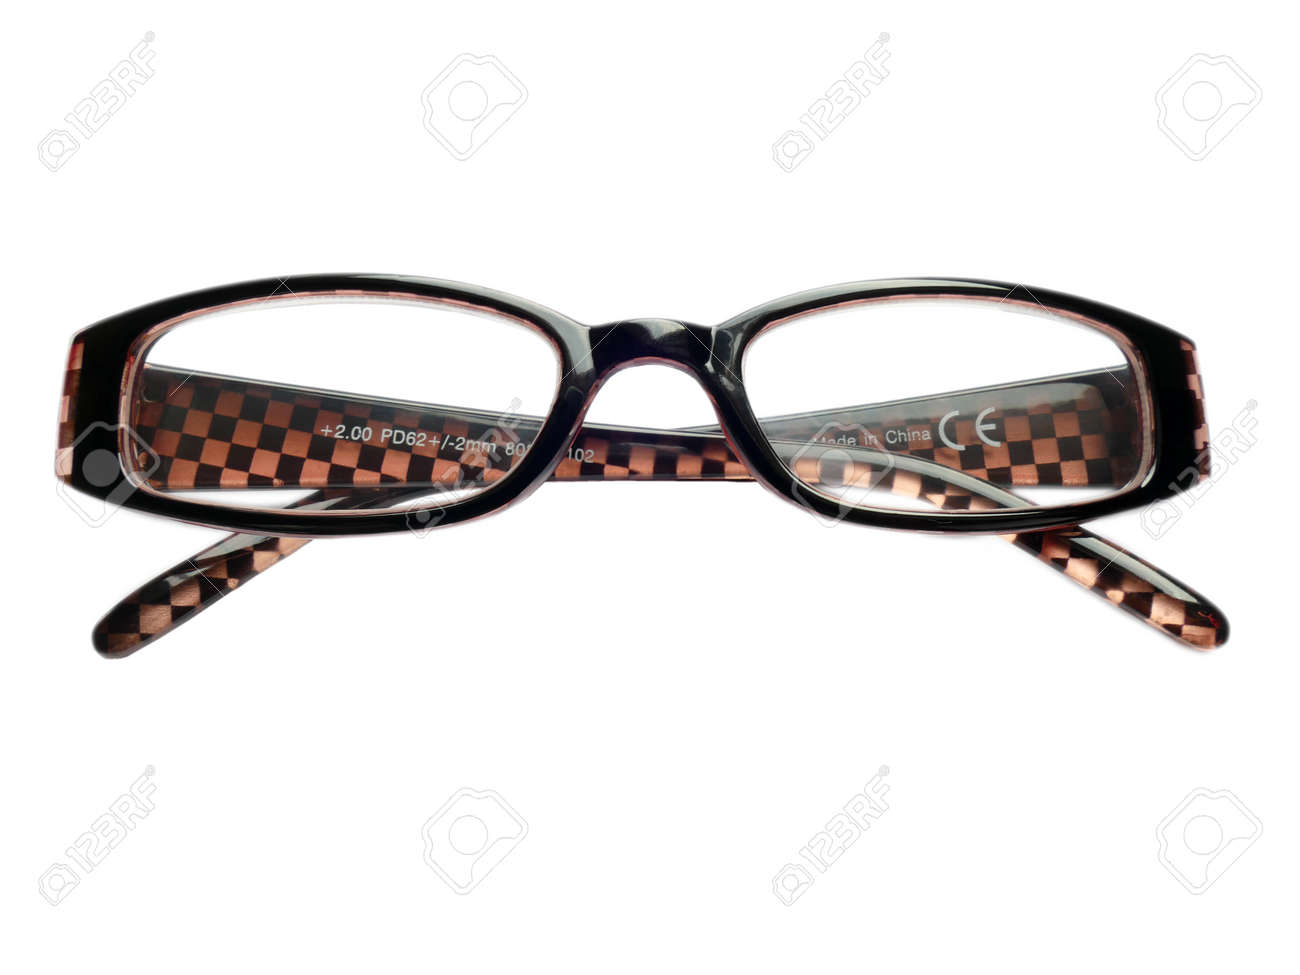 03d747d5735 Pair Eye Glasses